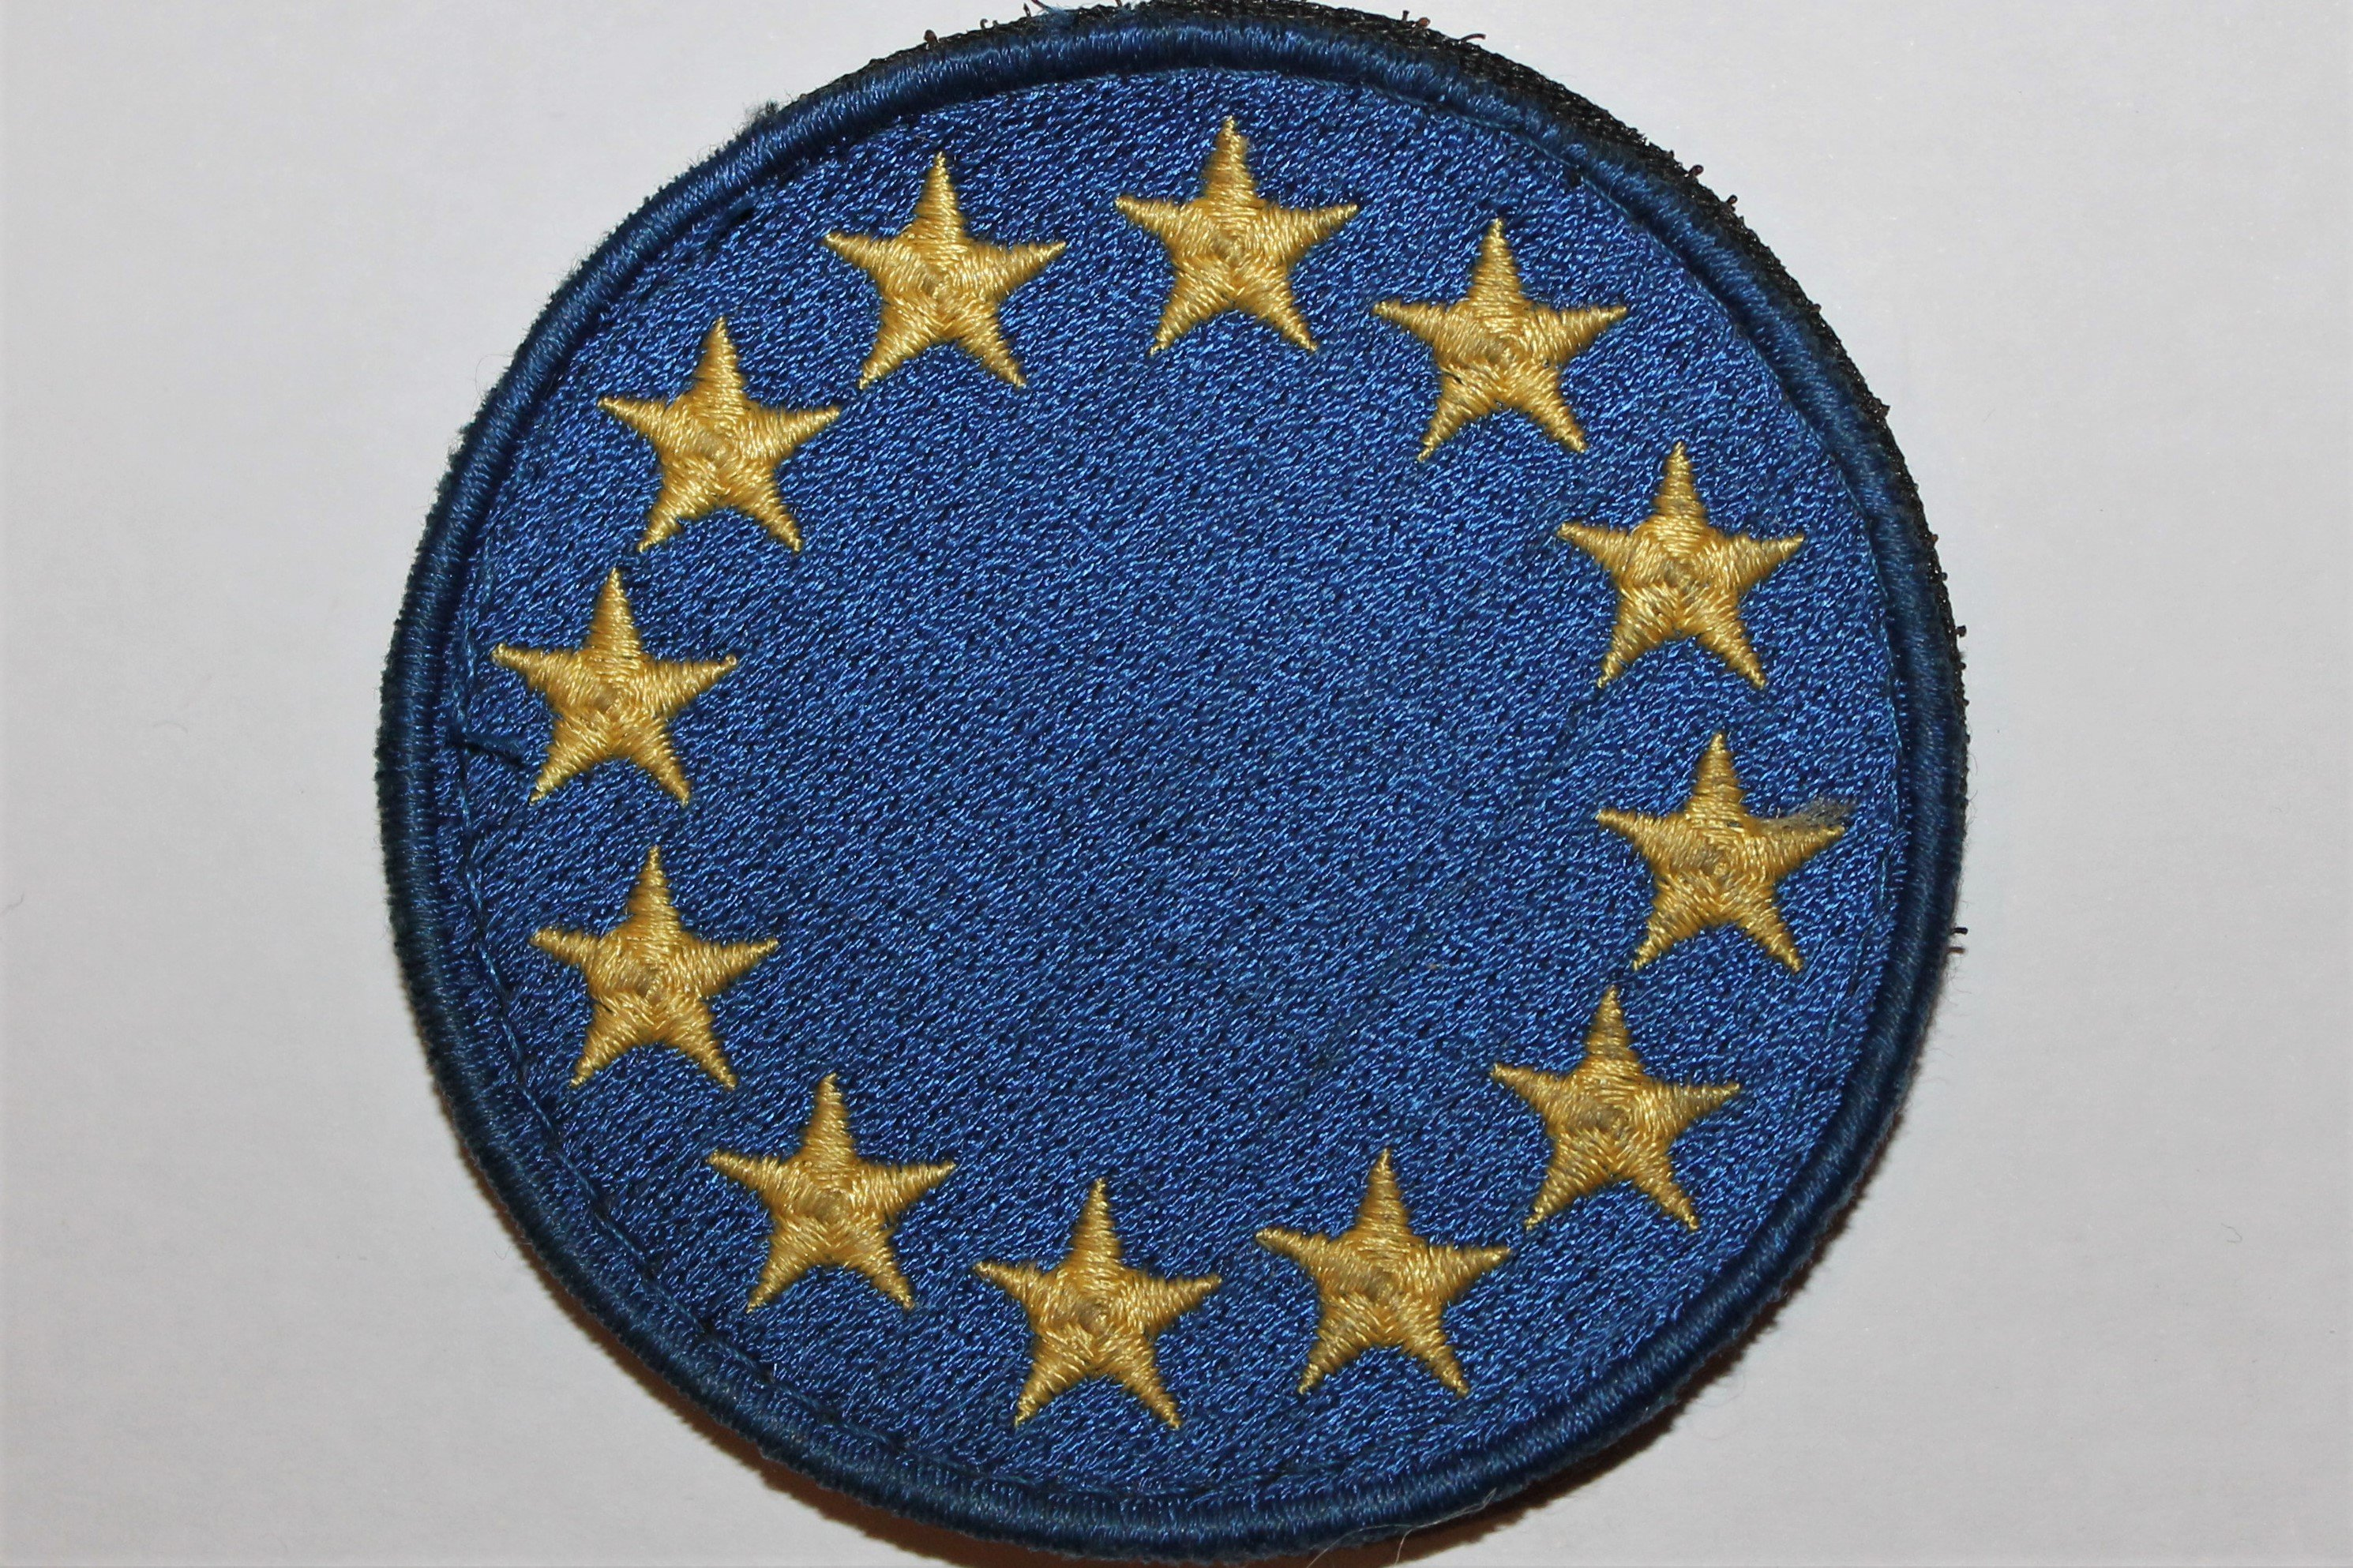 European Force (EUFOR)